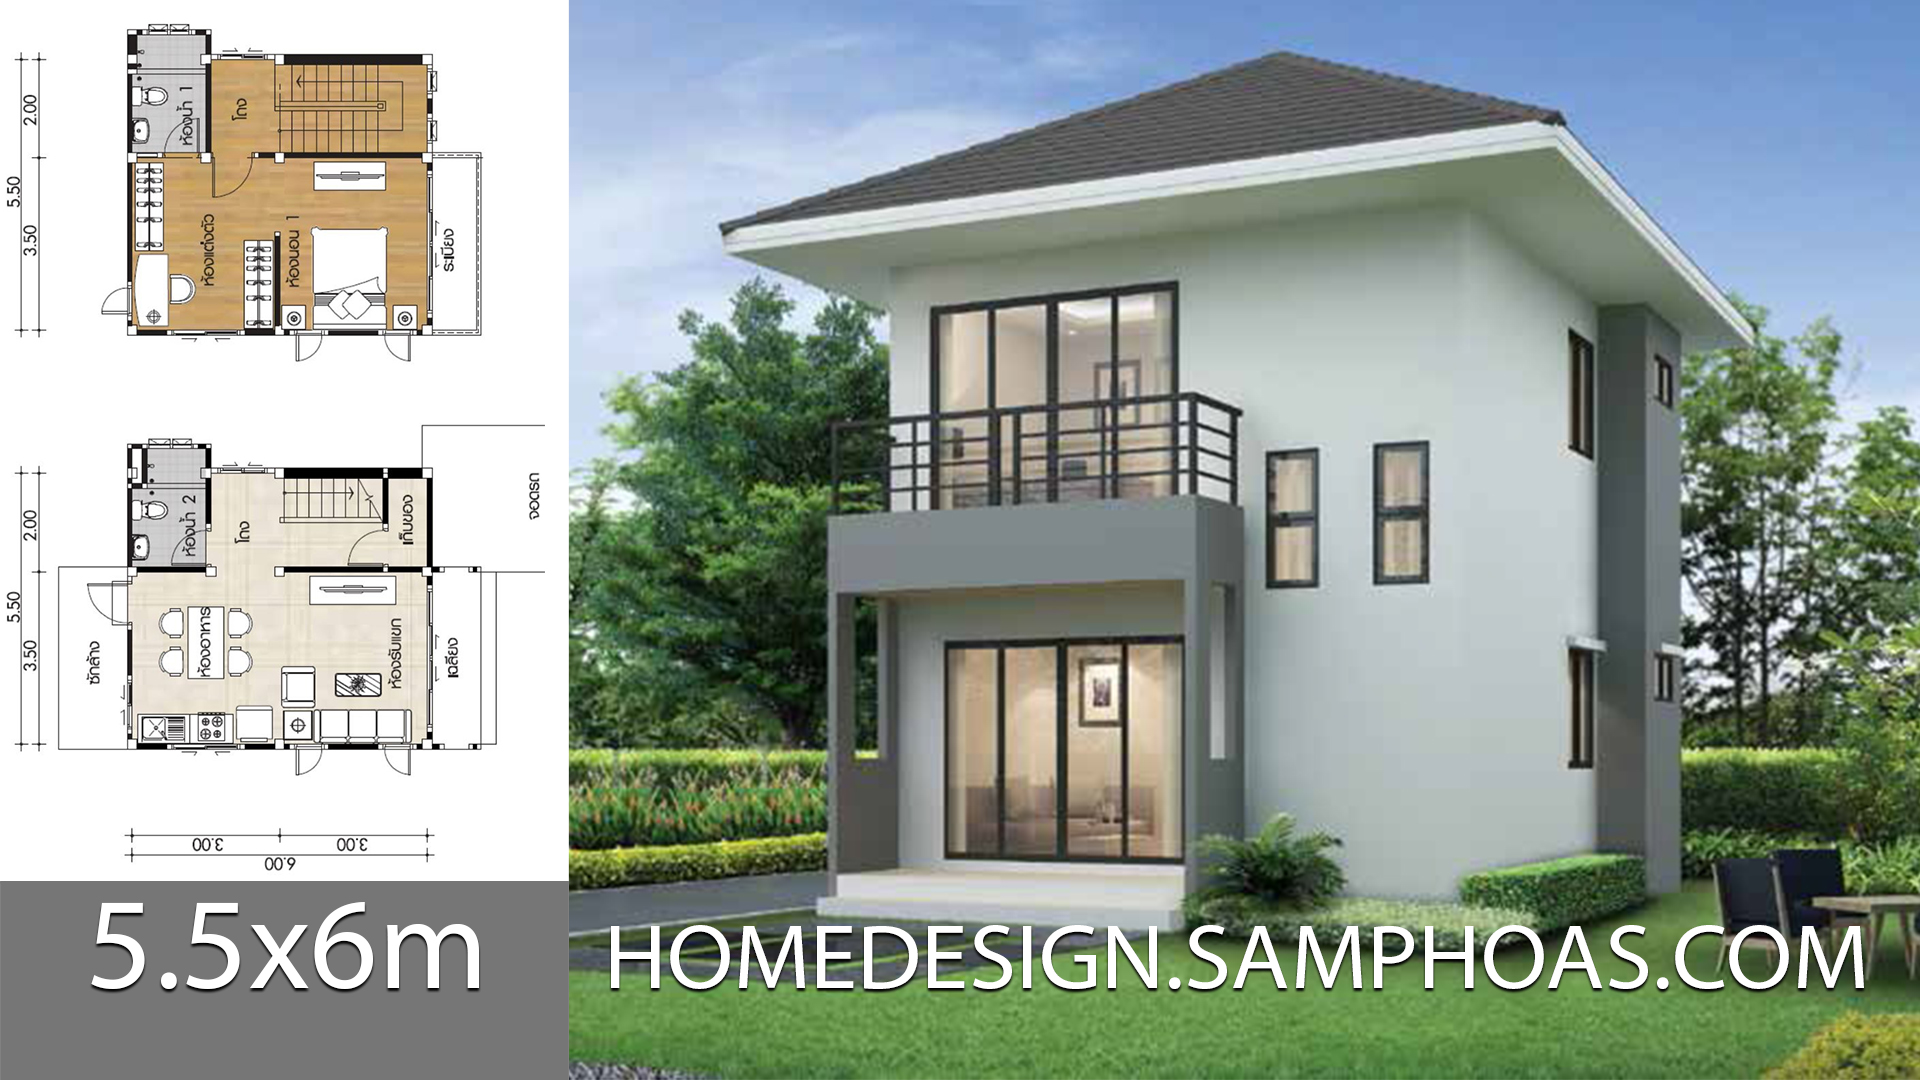 Small House Plans 5 5x6m With 1 Bedroom Home Ideas